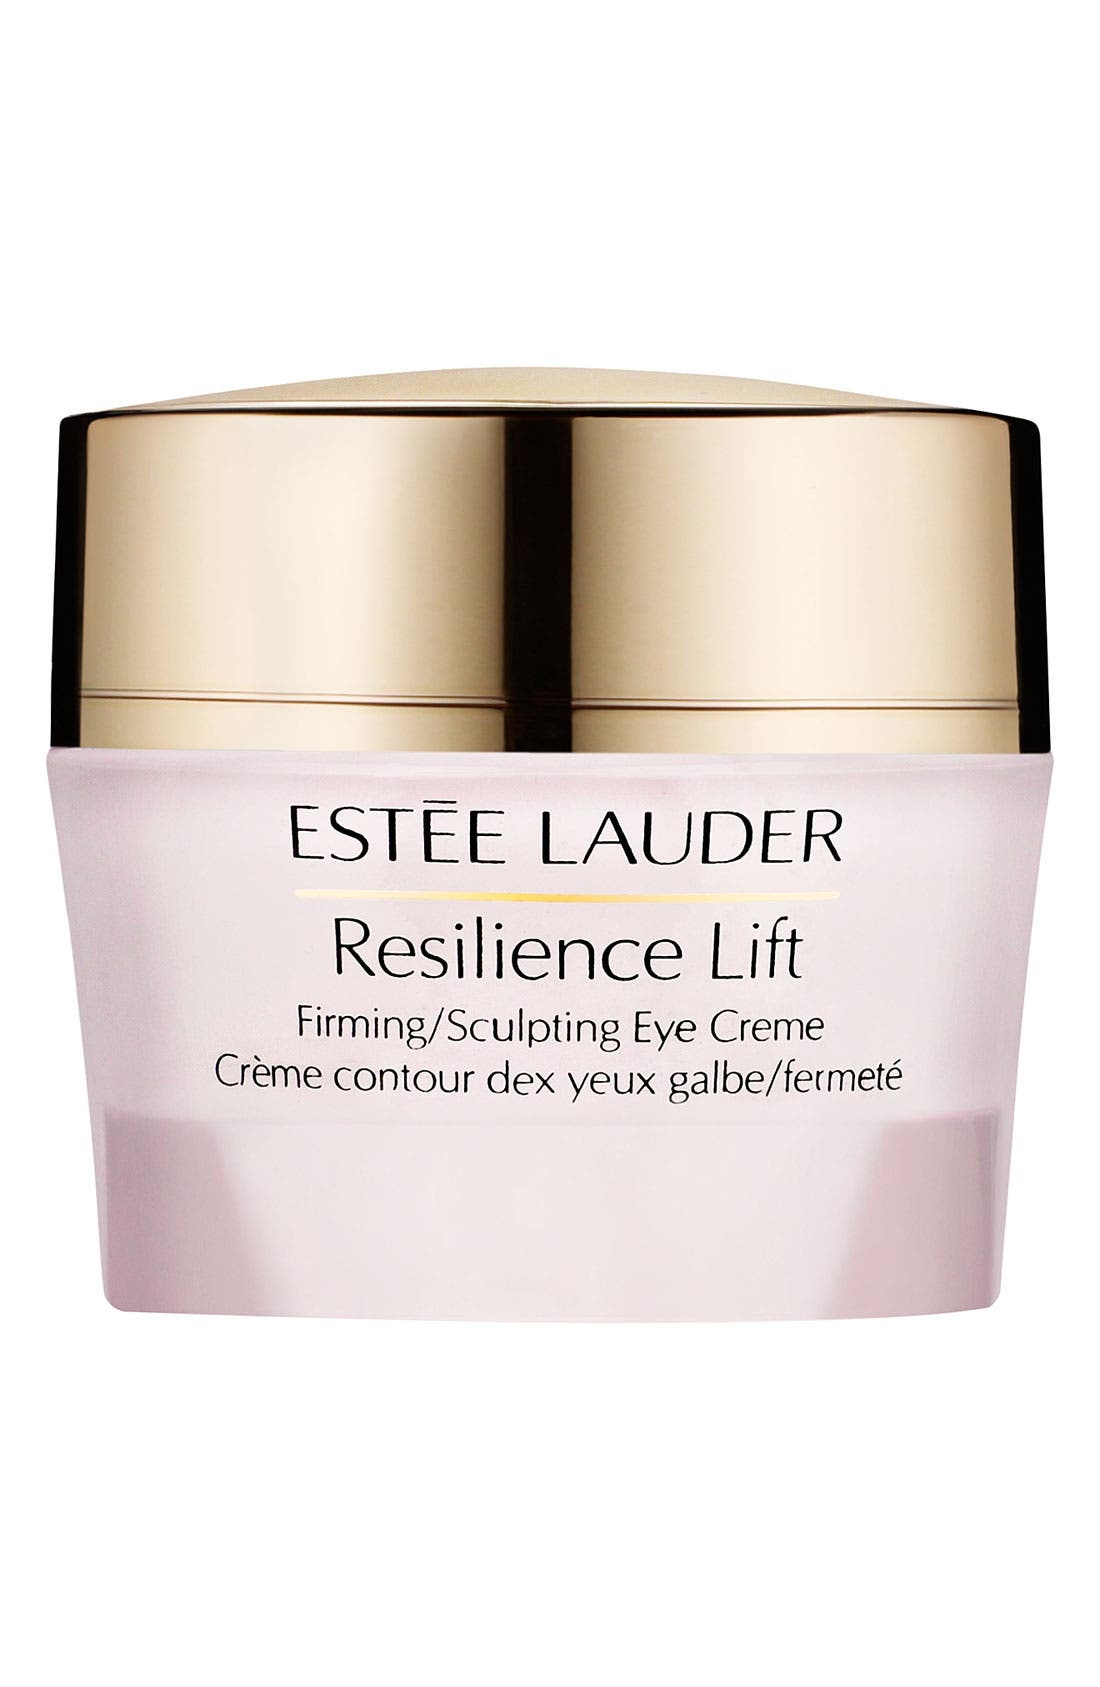 Resilience Lift Firming/Sculpting Eye Creme,                             Main thumbnail 1, color,                             000